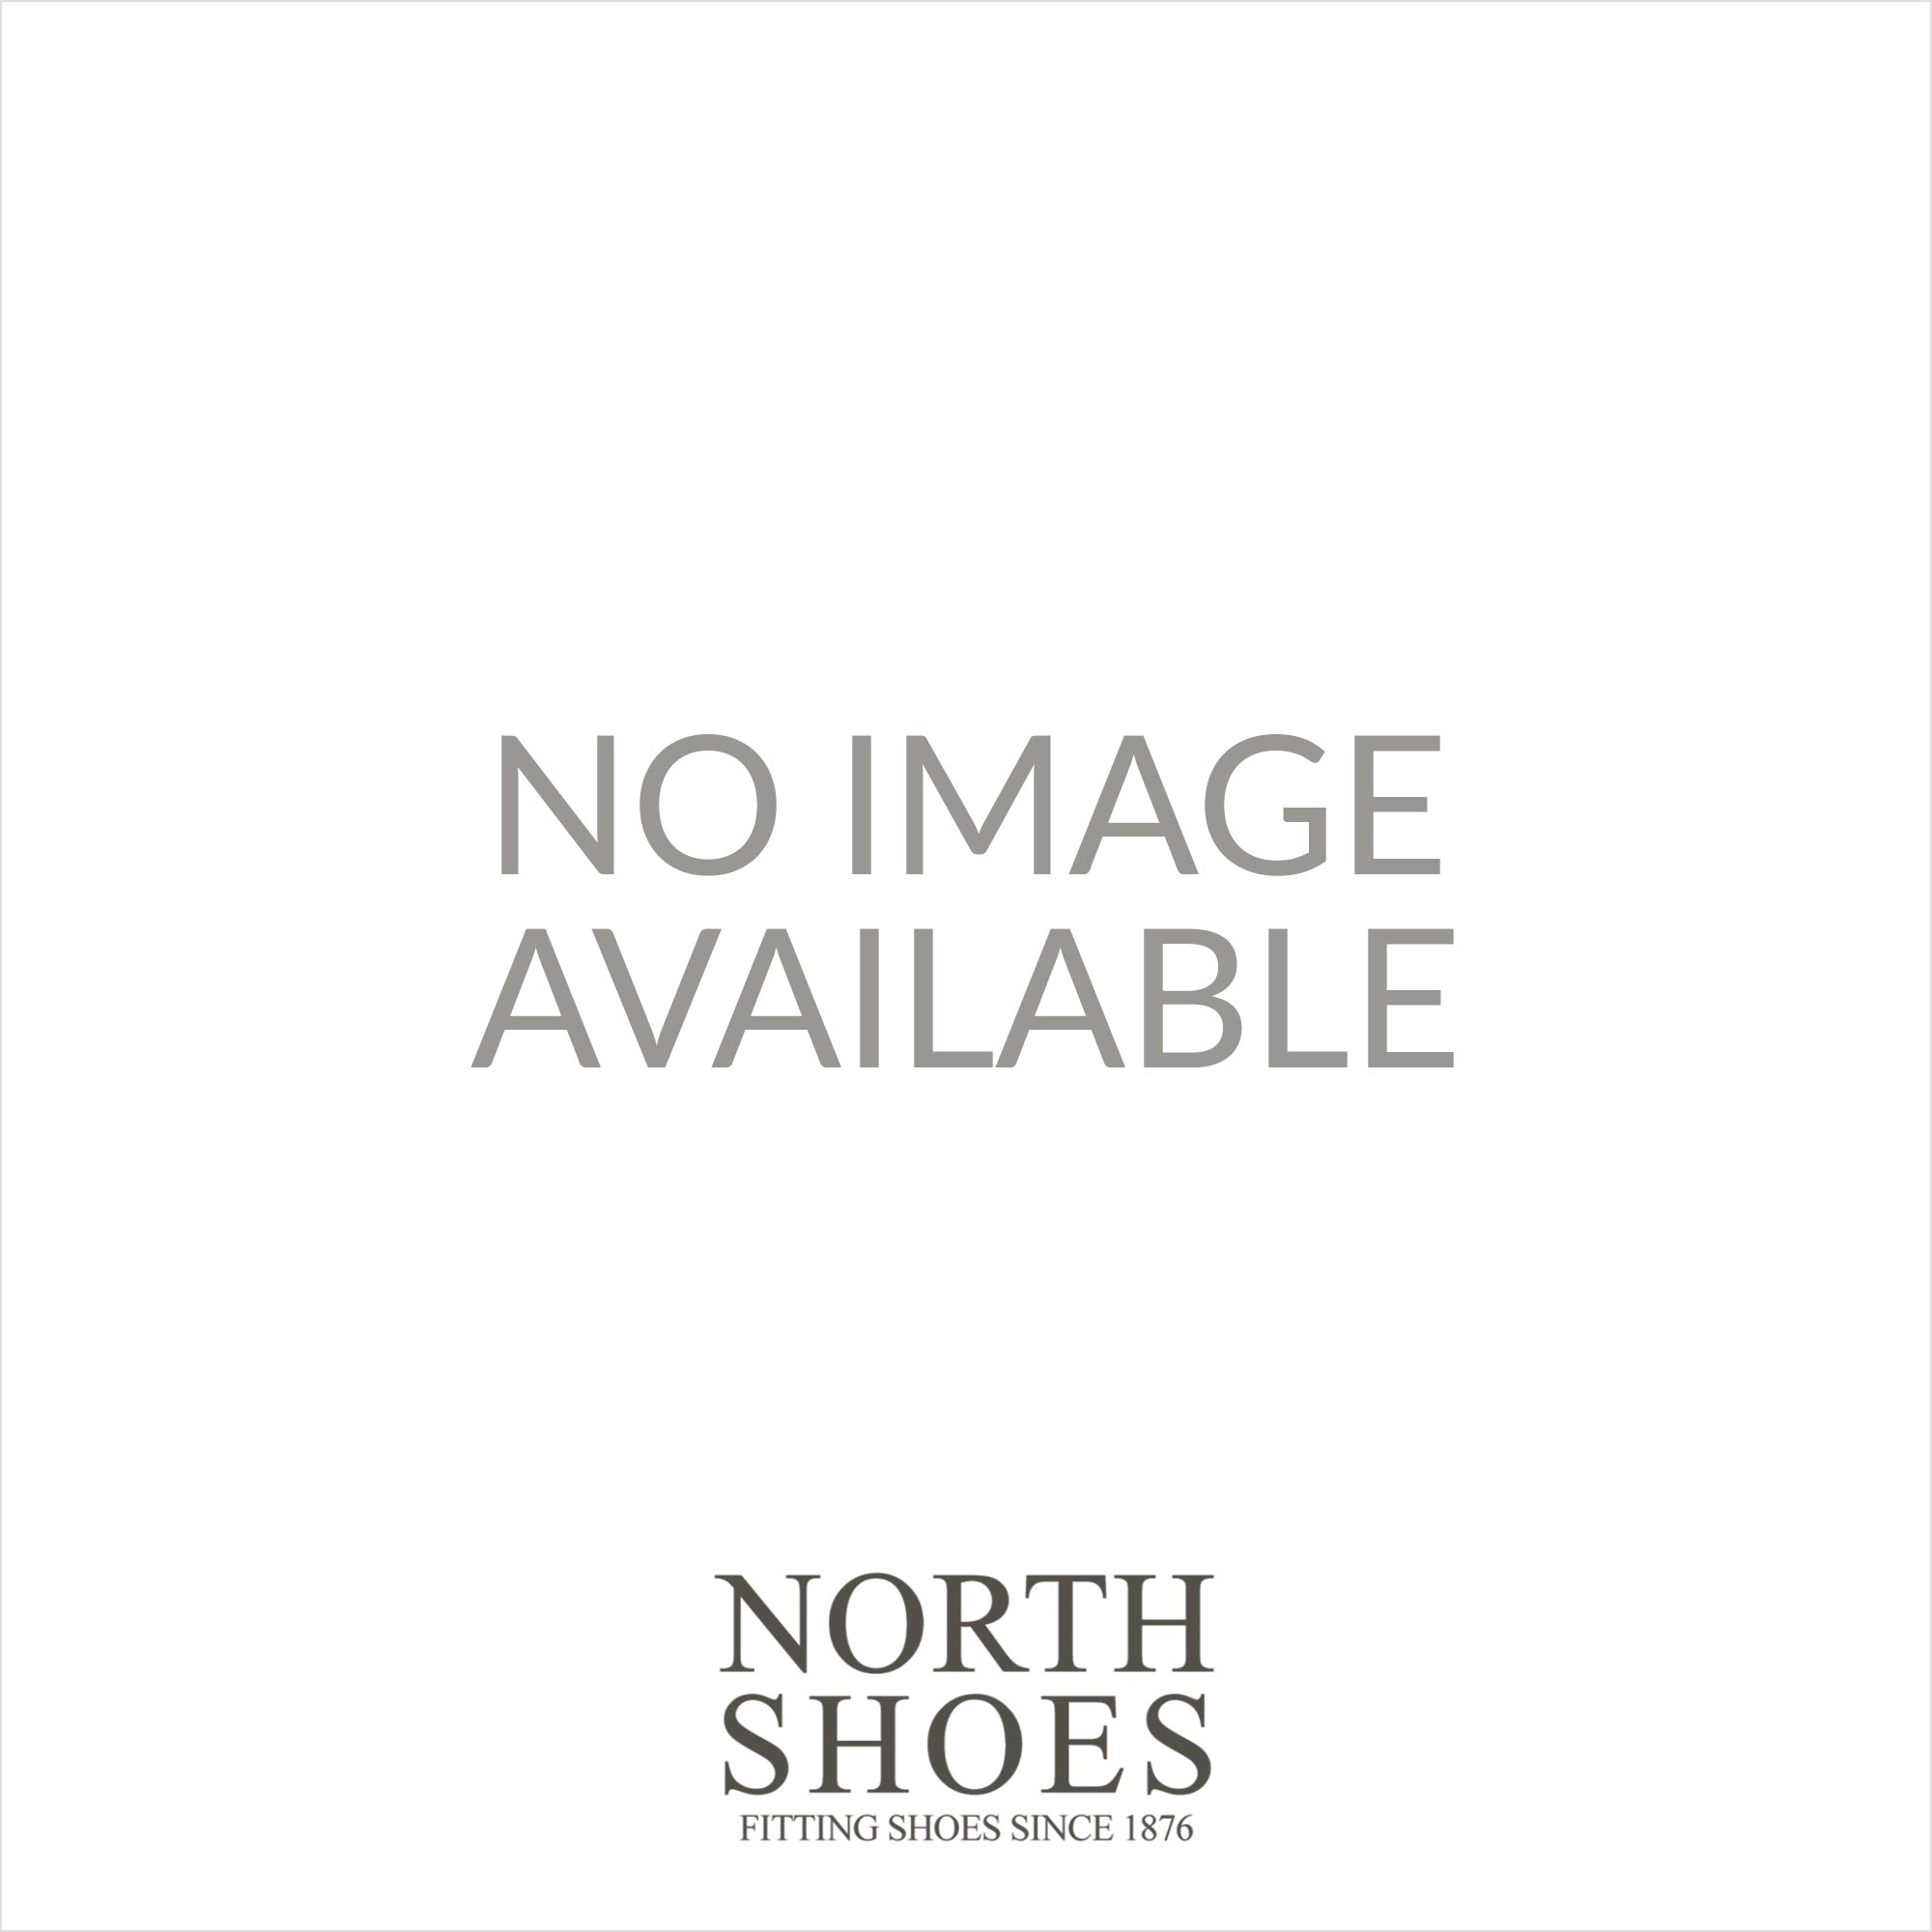 a8494c52789 Loake Python Tan Suede Leather Mens Lace Up Chukka Boots